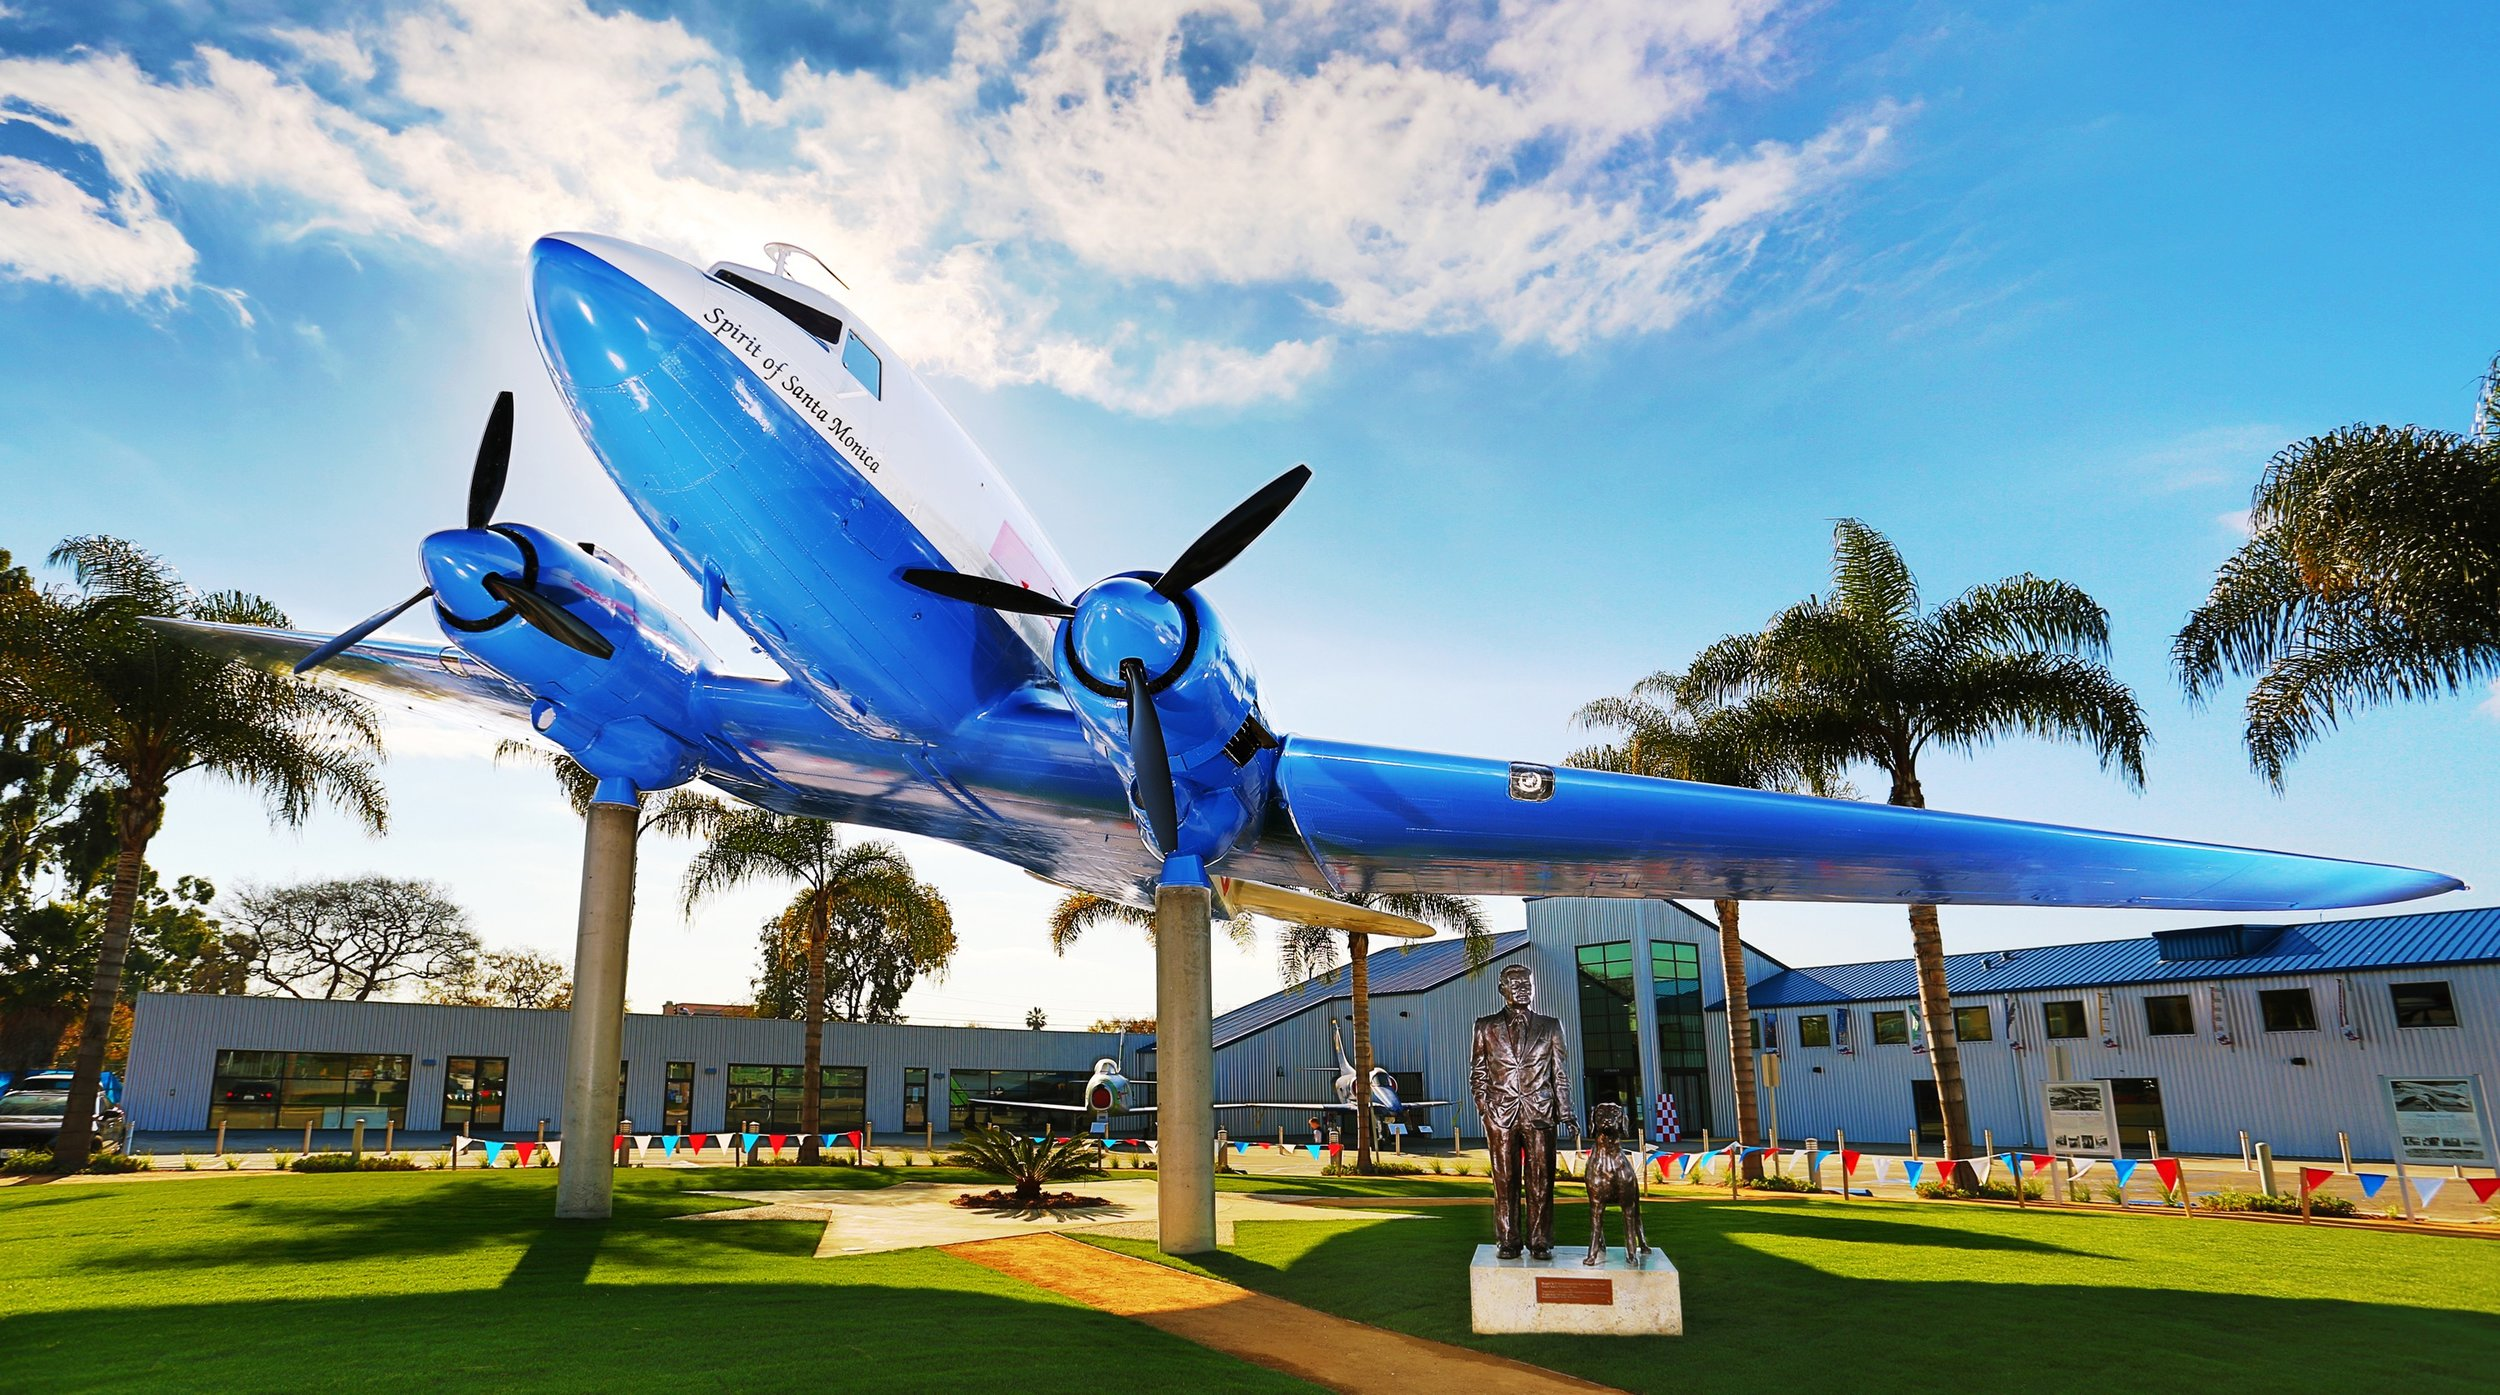 Monument to Donald Douglas at the Museum of Flying, Santa Monica